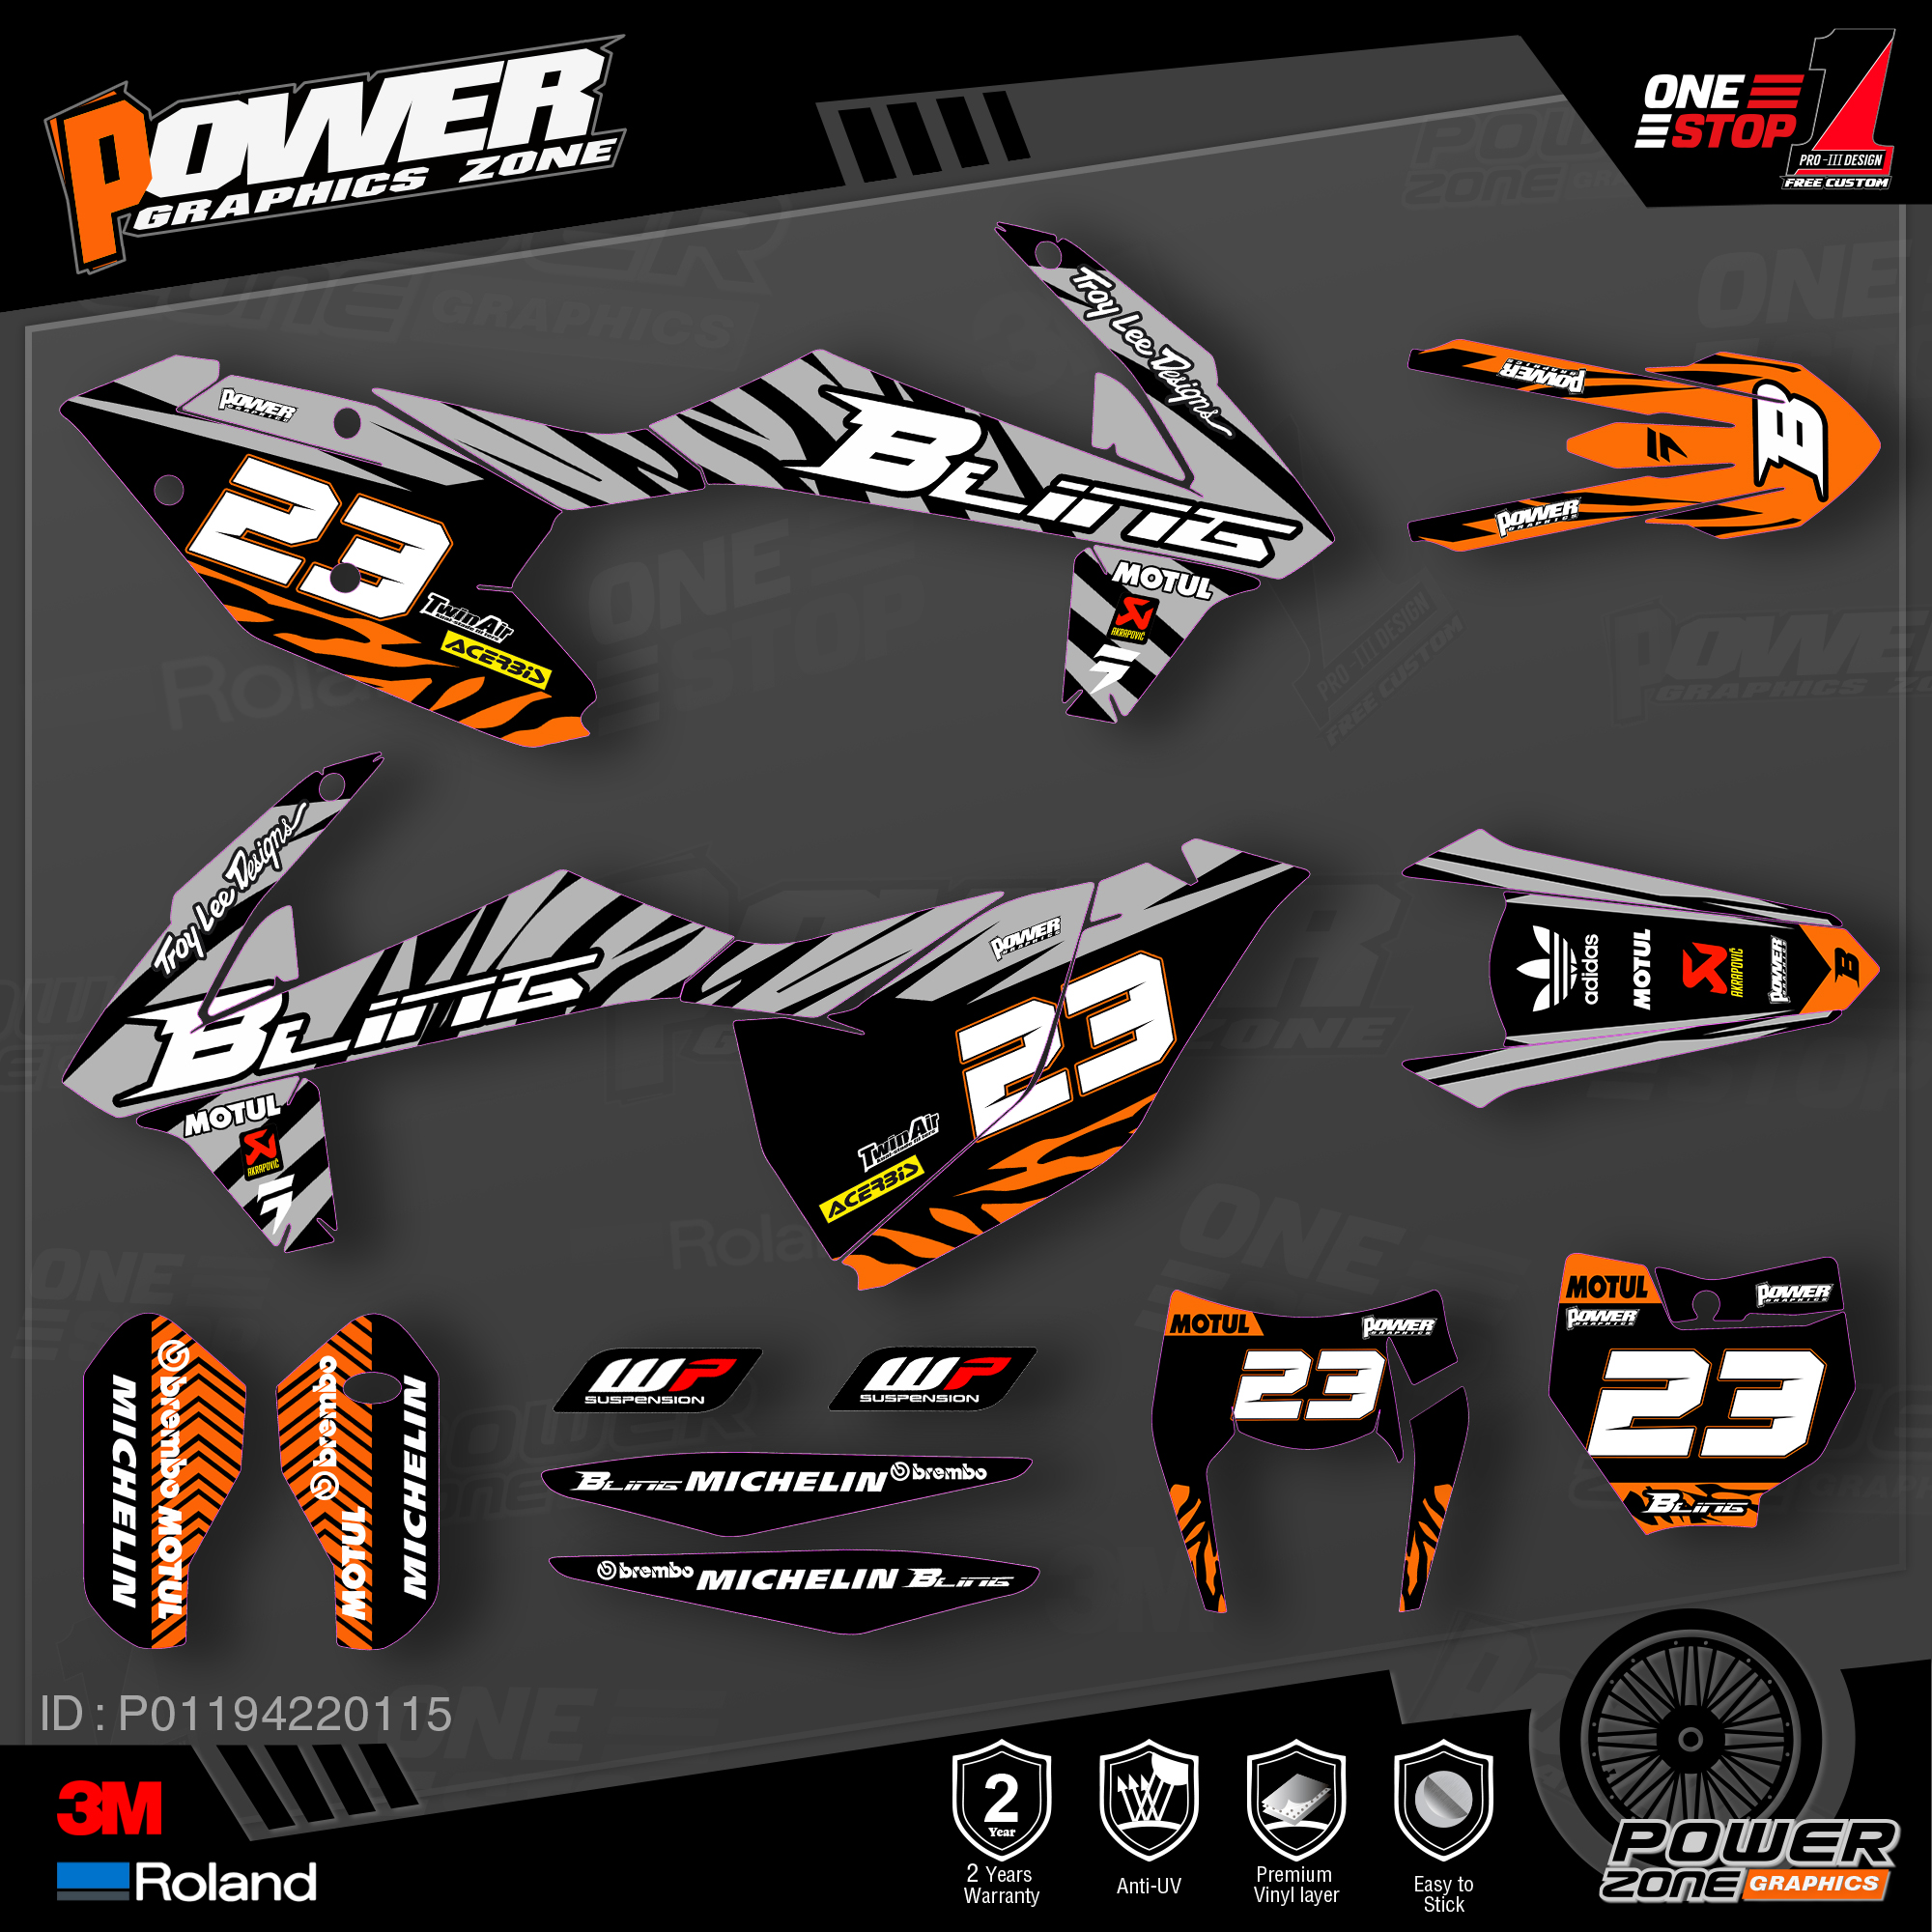 PowerZone Custom Team Graphics Backgrounds Decals 3M Stickers Kit For KTM SX SXF MX 16-18  EXC XCW Enduro 17-19 125 To 500cc 15